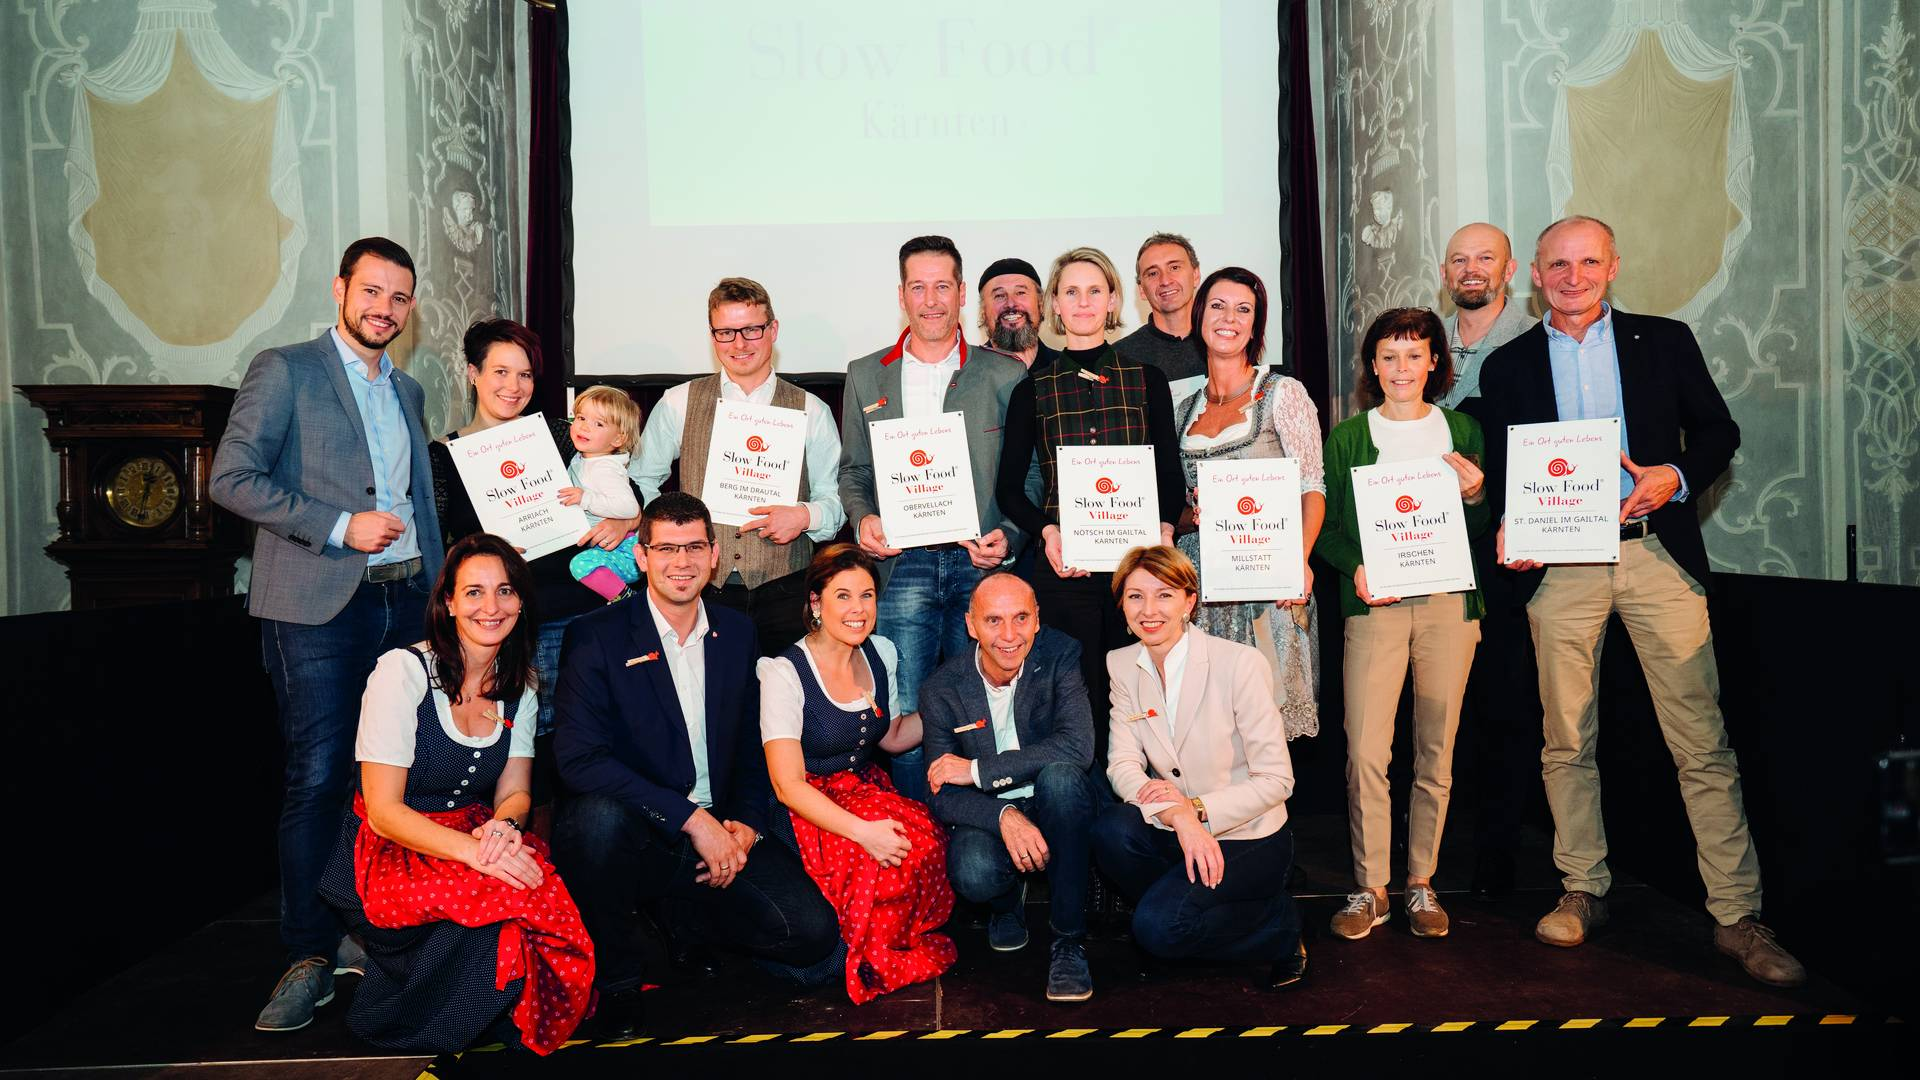 Slow Food Villages Verleihung im Kloster Wernberg